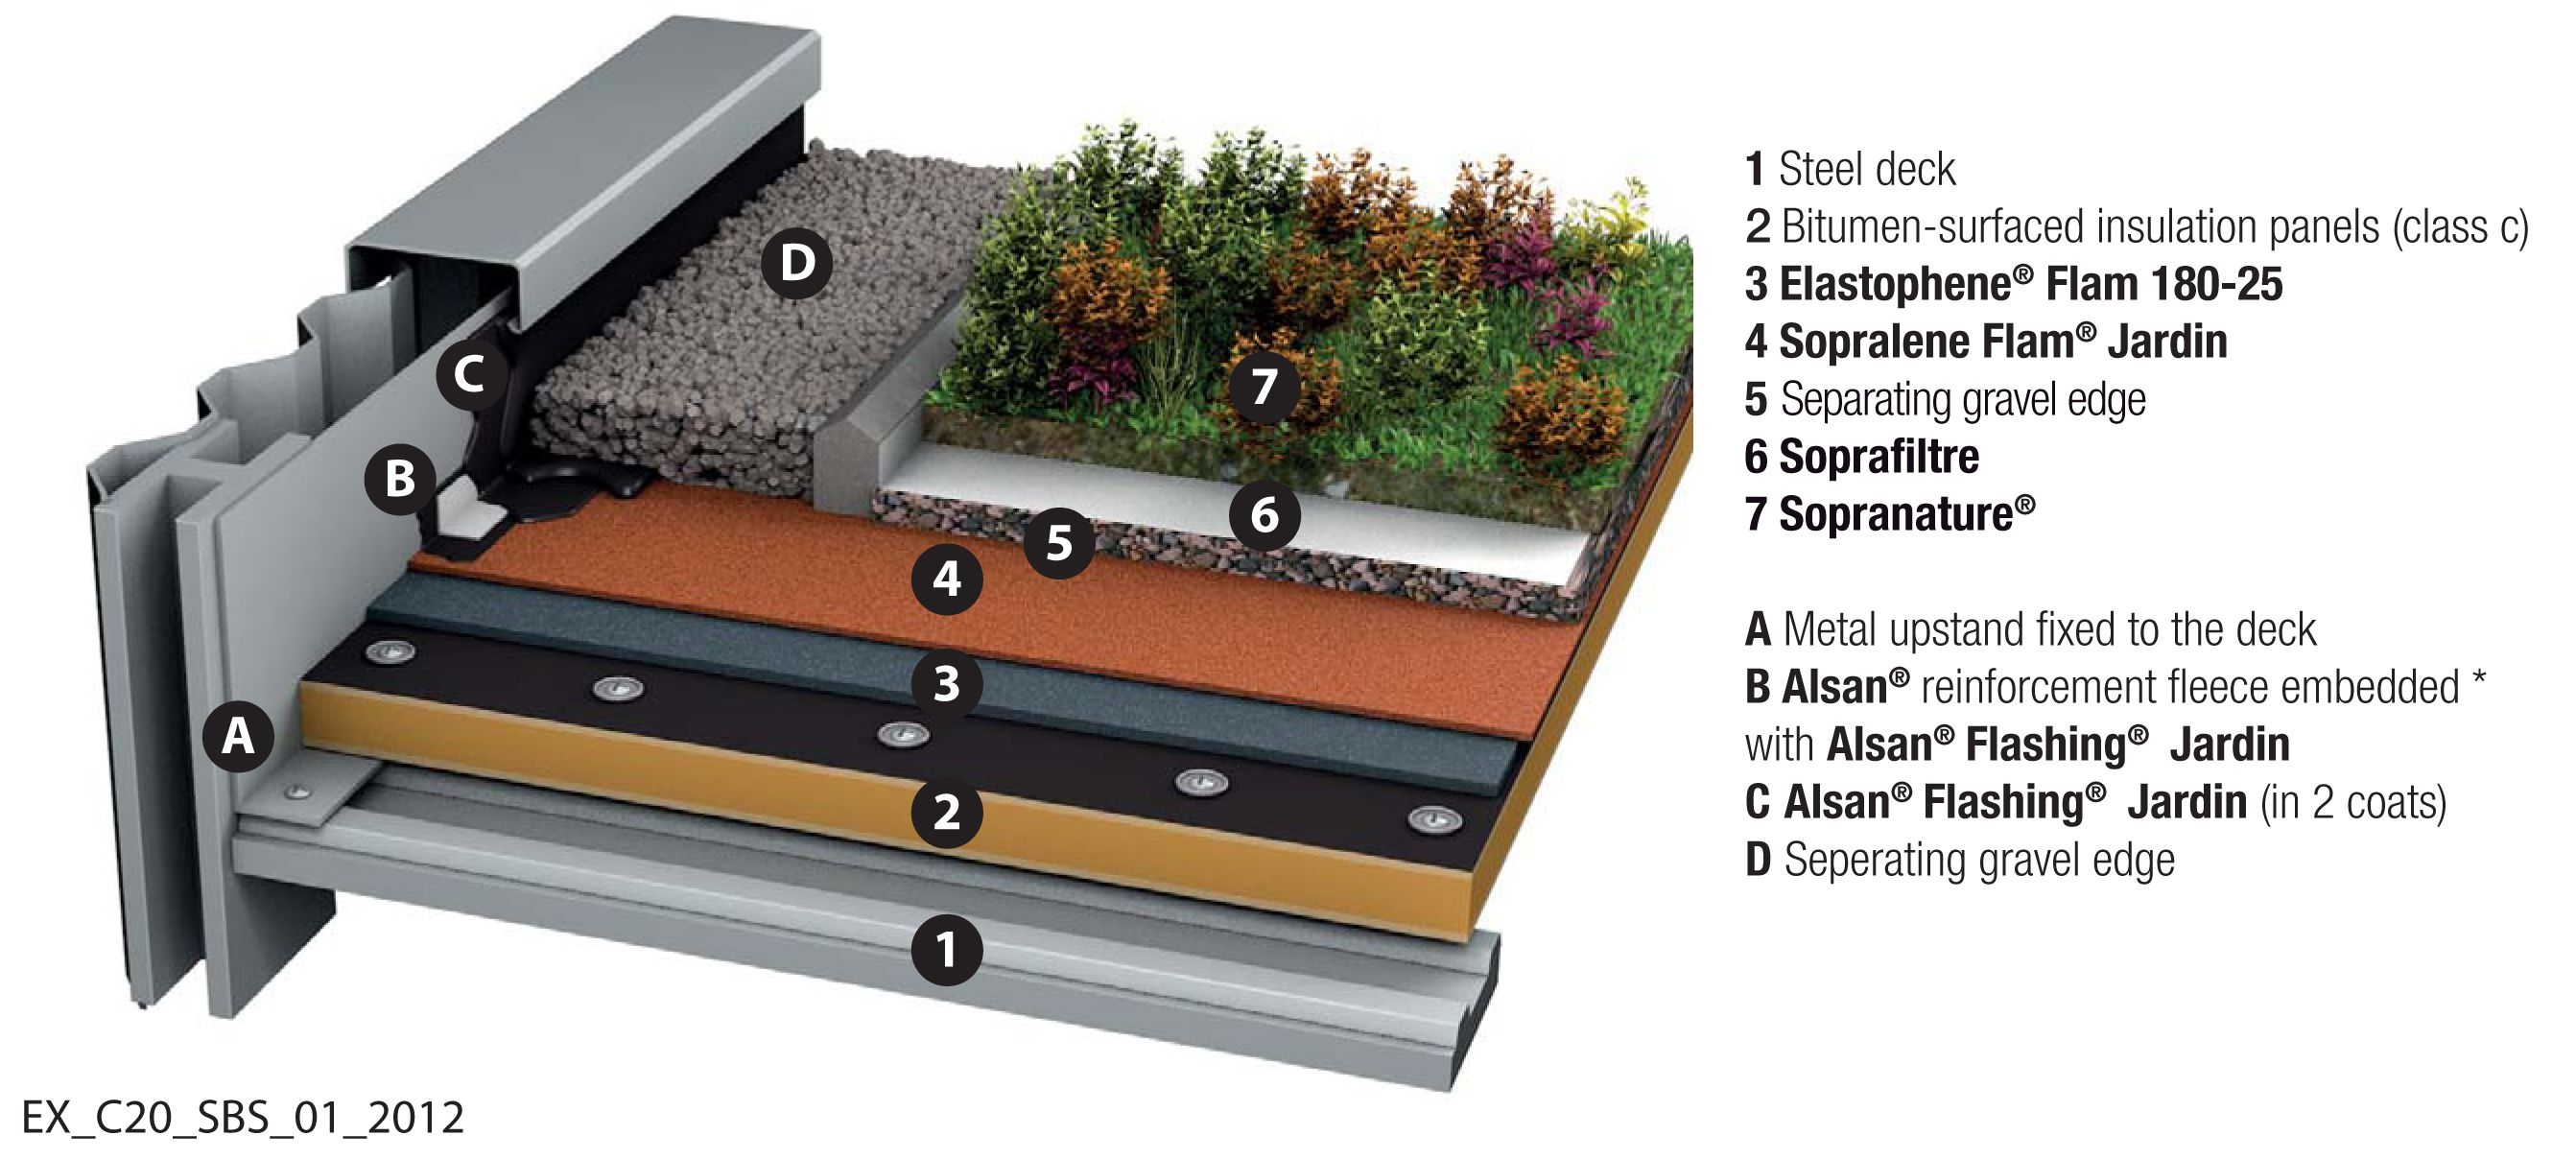 Http Www Benchmarkroofing Ca Upload Sopremagreenroof Jpg Roofing Systems Green Roof Roofing